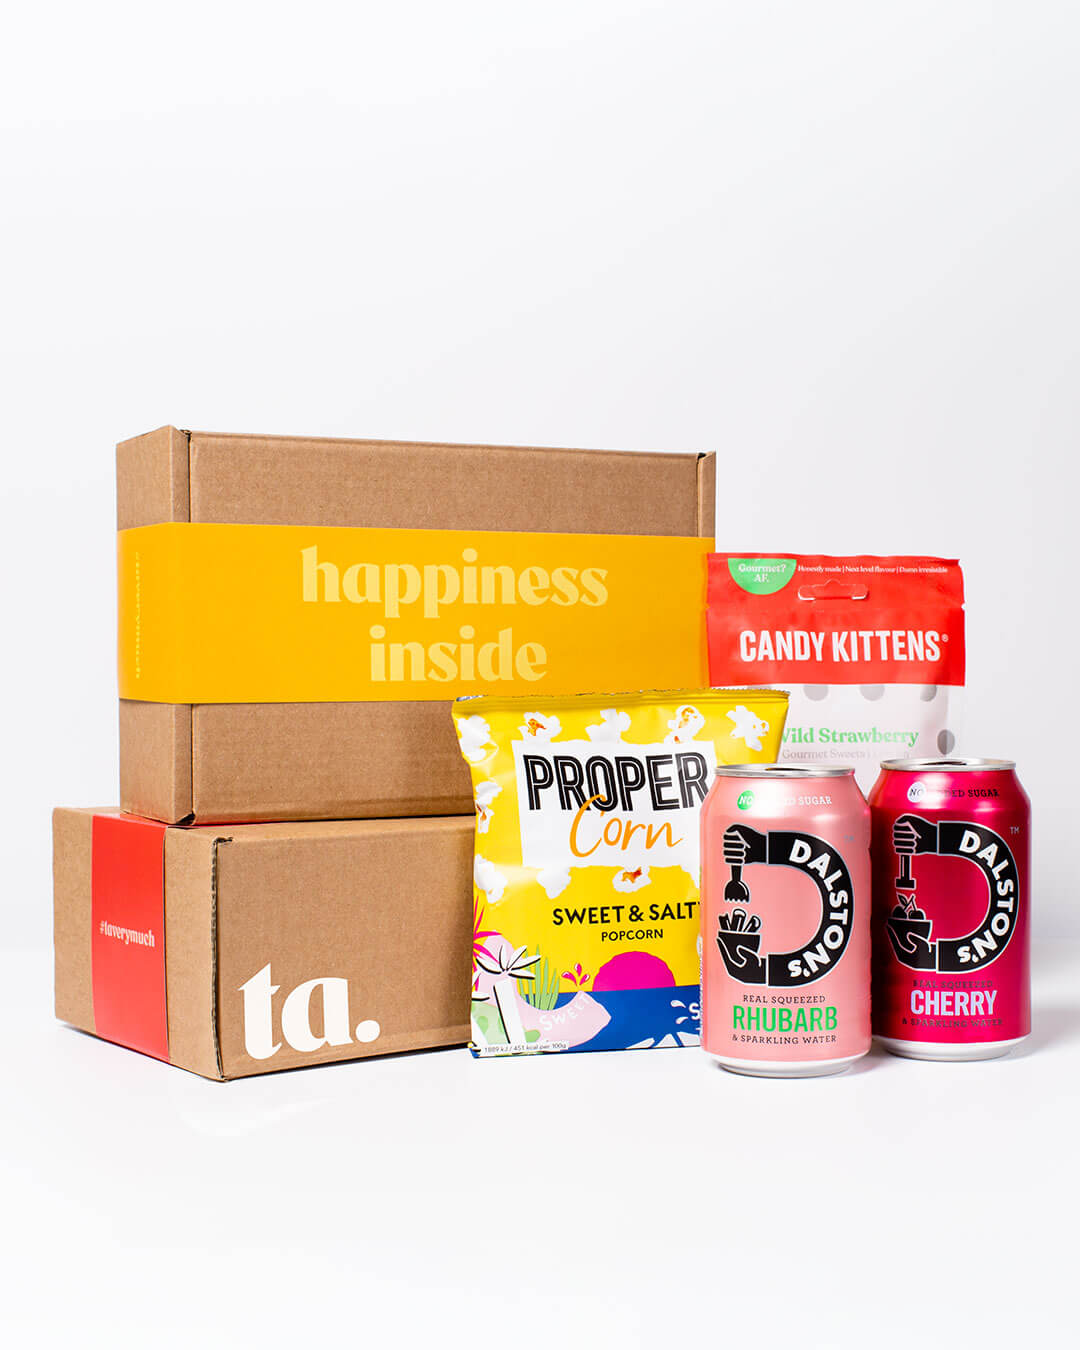 soft drink box contents: cans of Dalston's soft drinks, Propercorn popcorn & Candy Kitten sweets